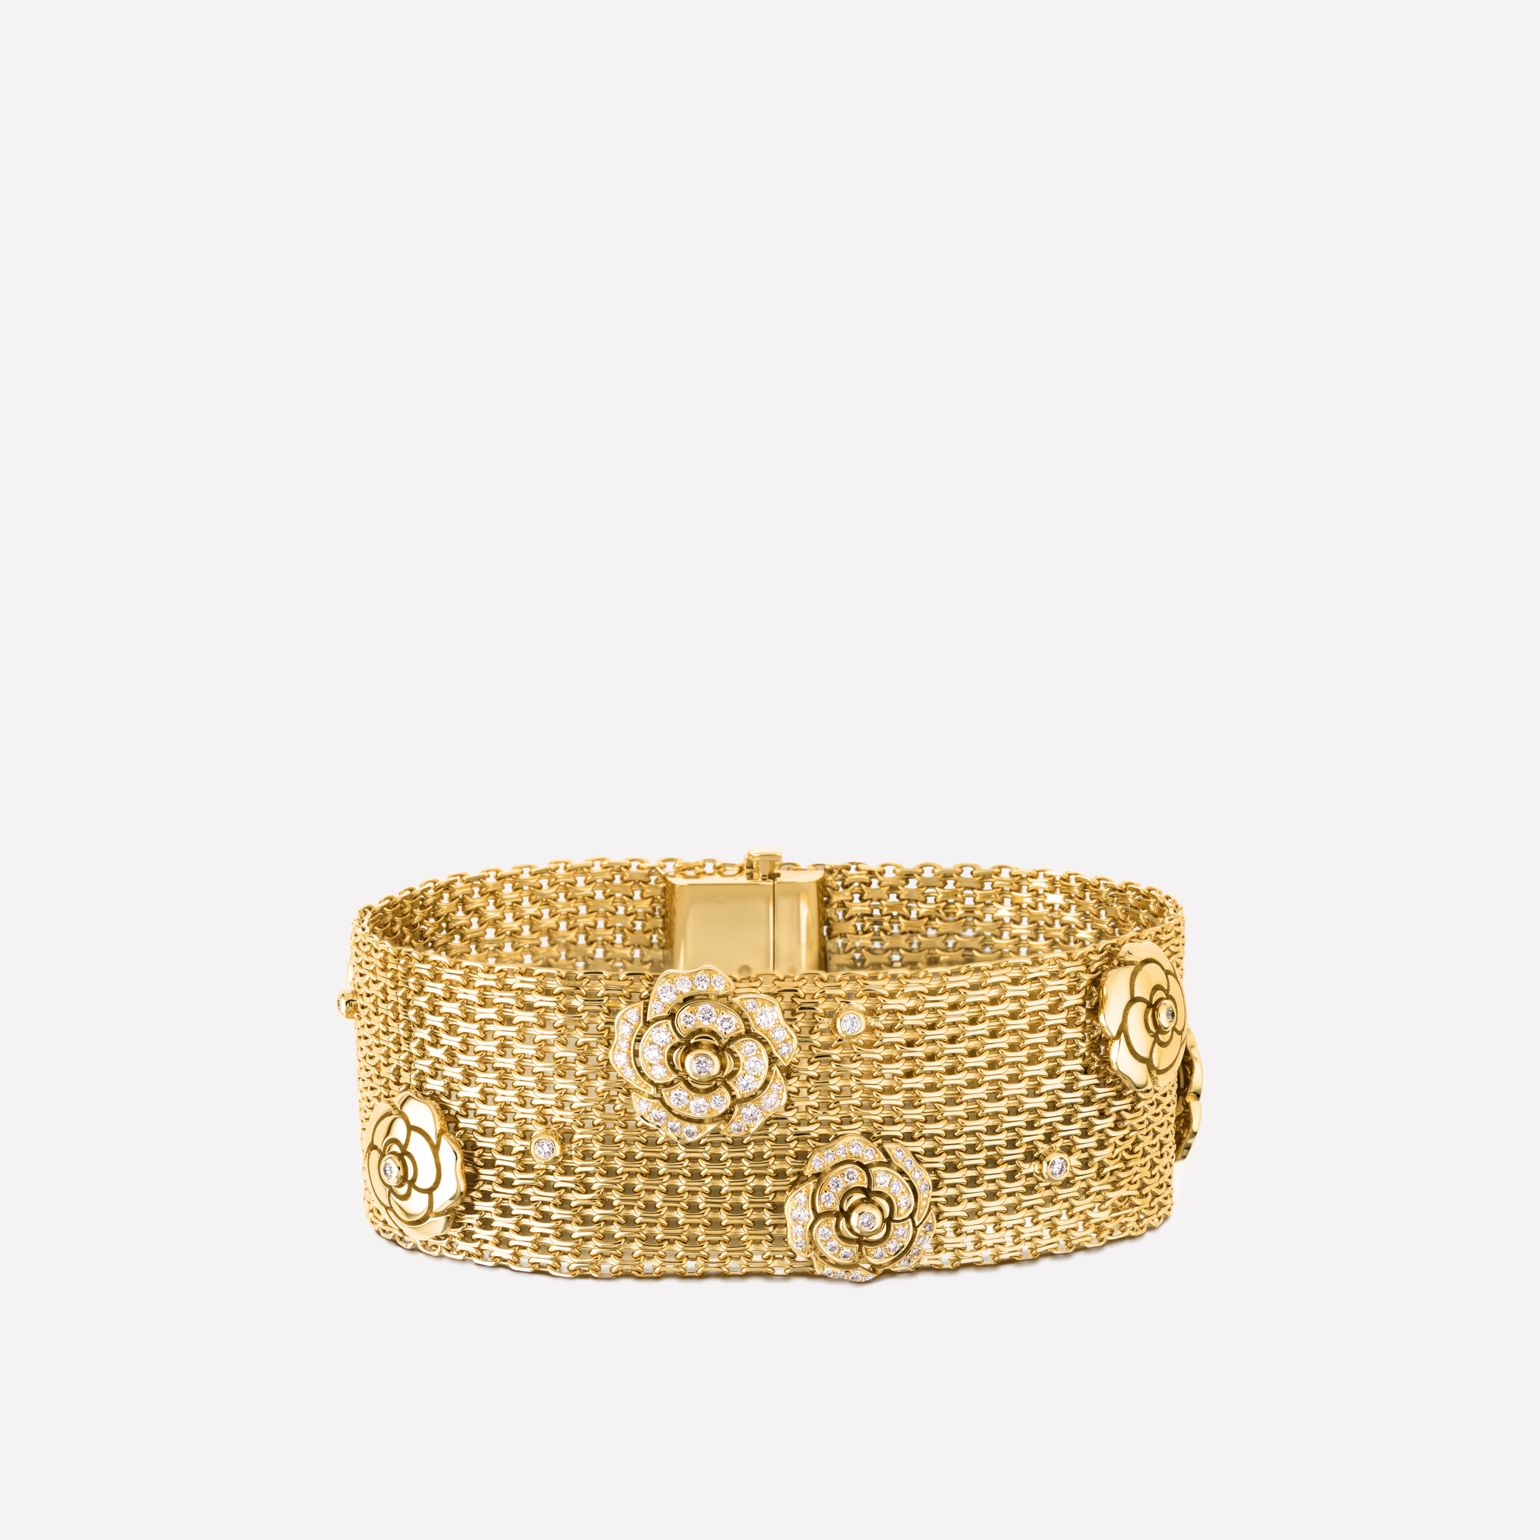 Impression de Camélia bracelet 18K yellow gold, diamonds